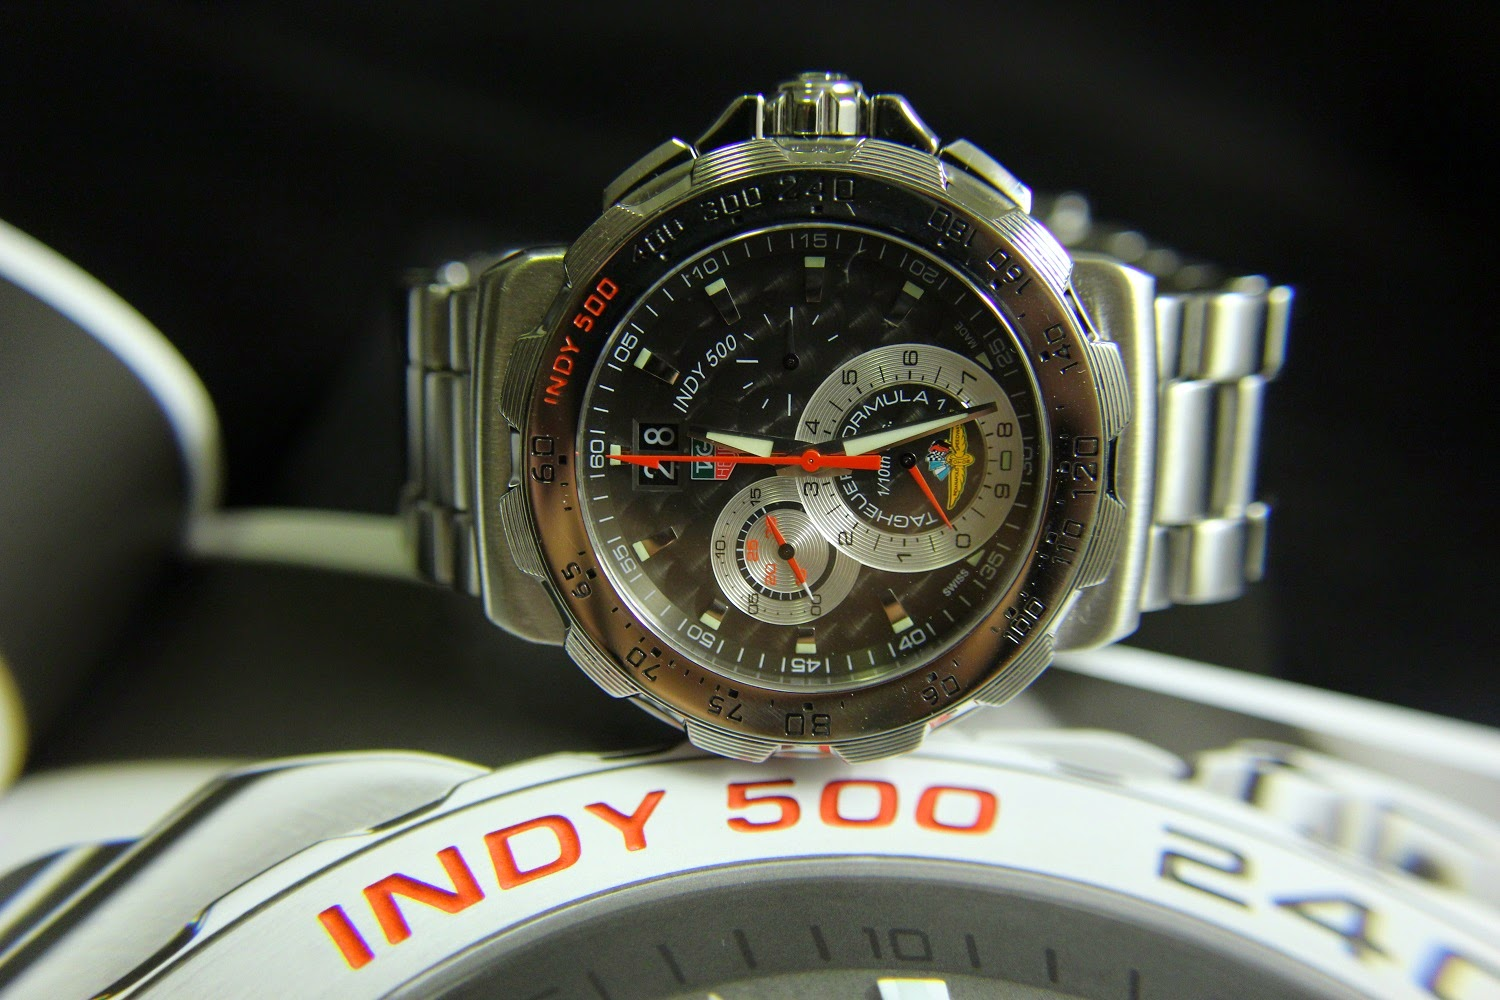 SOLD] TAG HEUER FORMULA 1 INDY 500 GRANDE DATE CHRONOGRAPH - Lapak